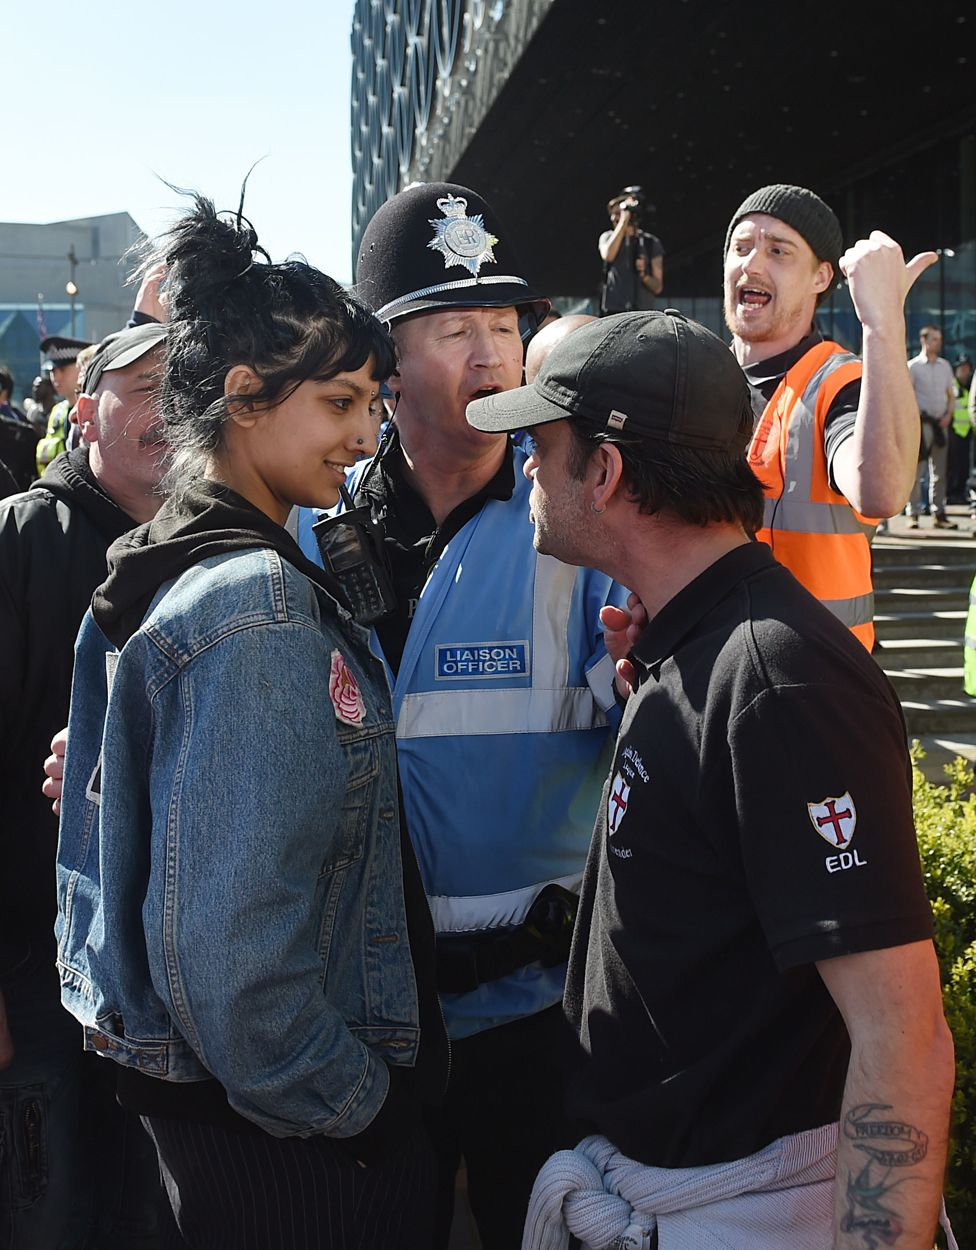 An English Defence League (EDL) protestor clashes with a member of the public during a demonstration in the city of Birmingham